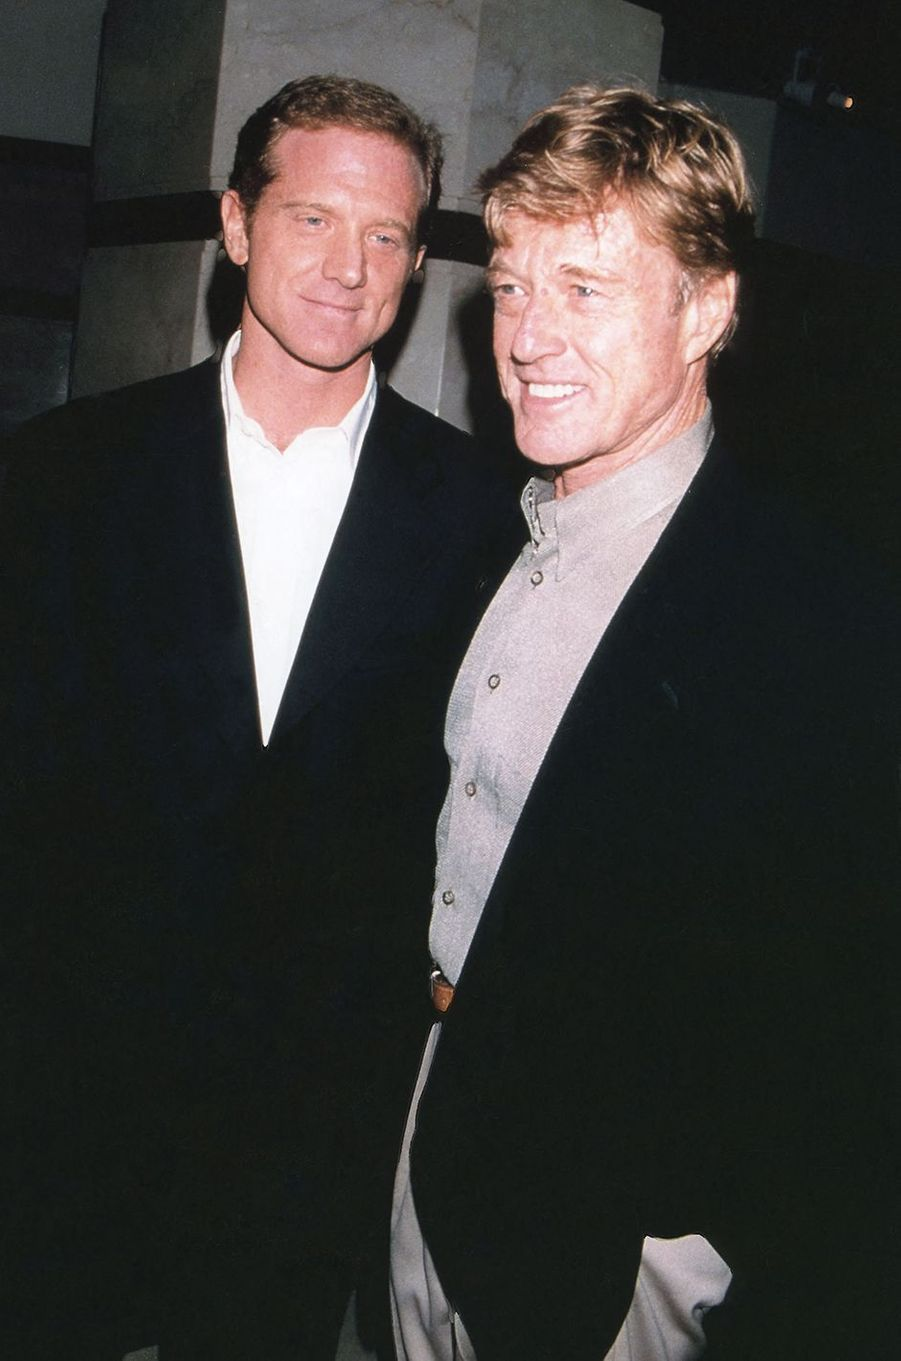 James et Robert Redford à New York en 1999